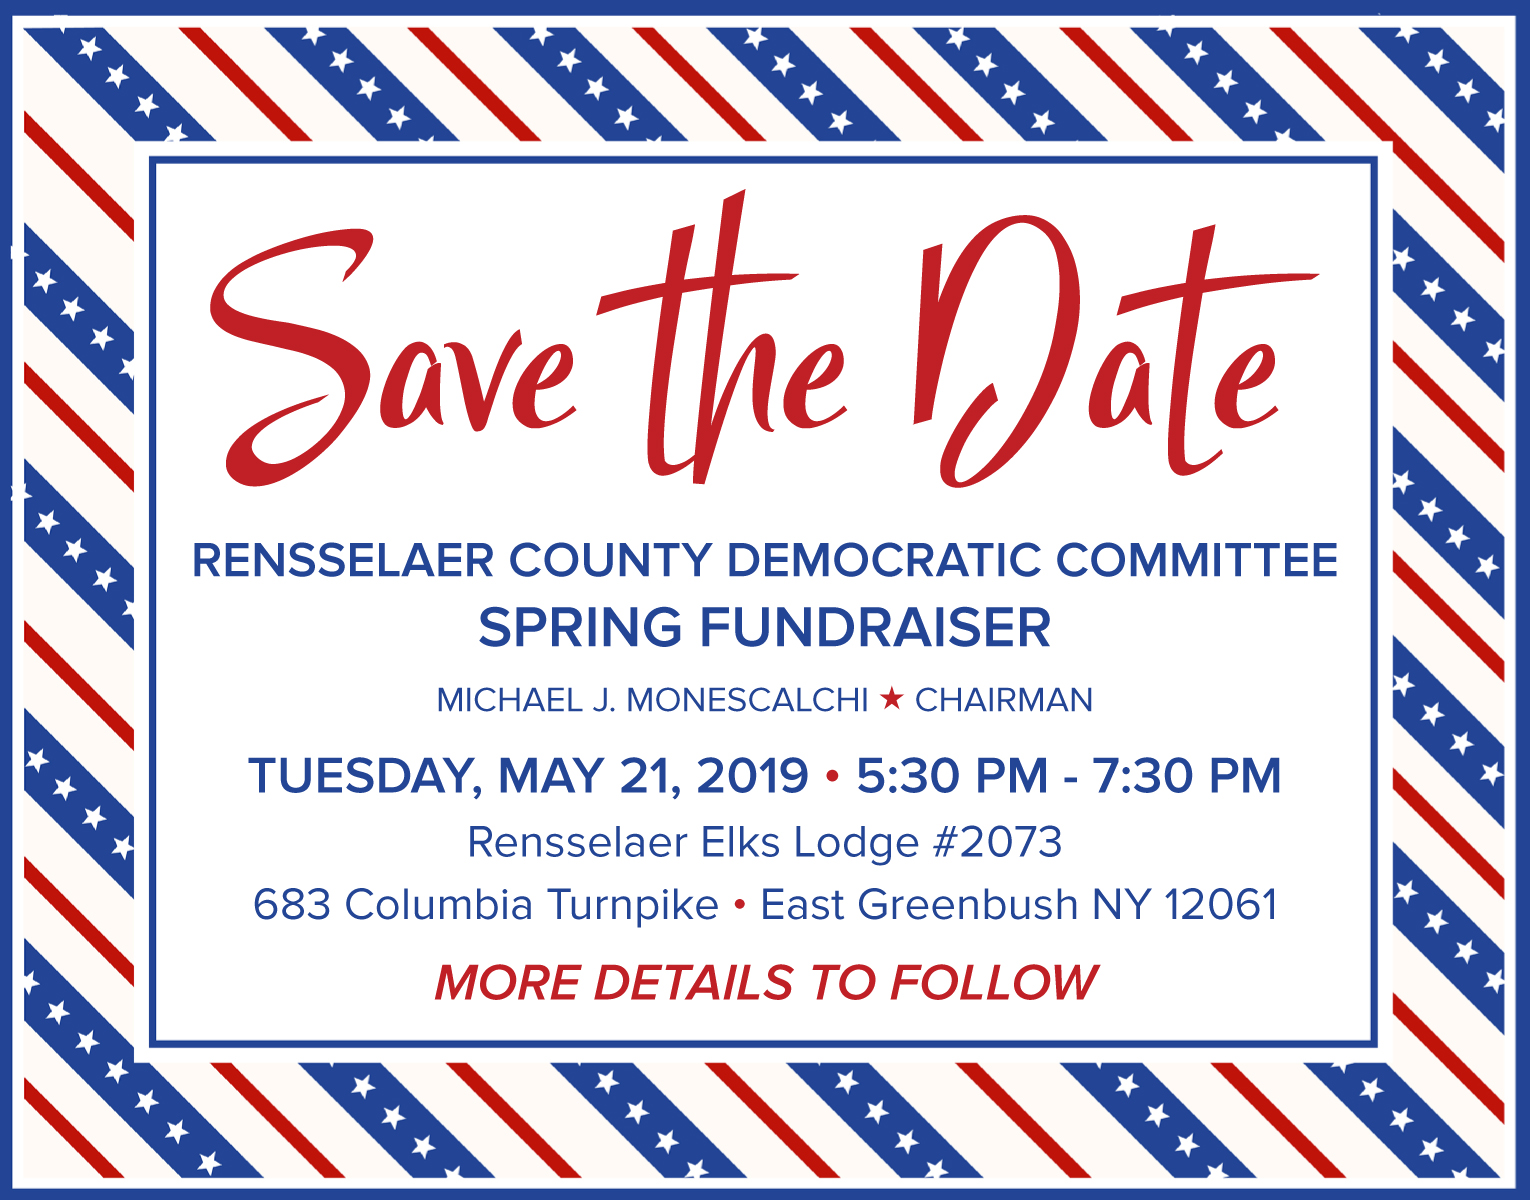 RCDC Save the Date for May 21 Fundraiser.jpg